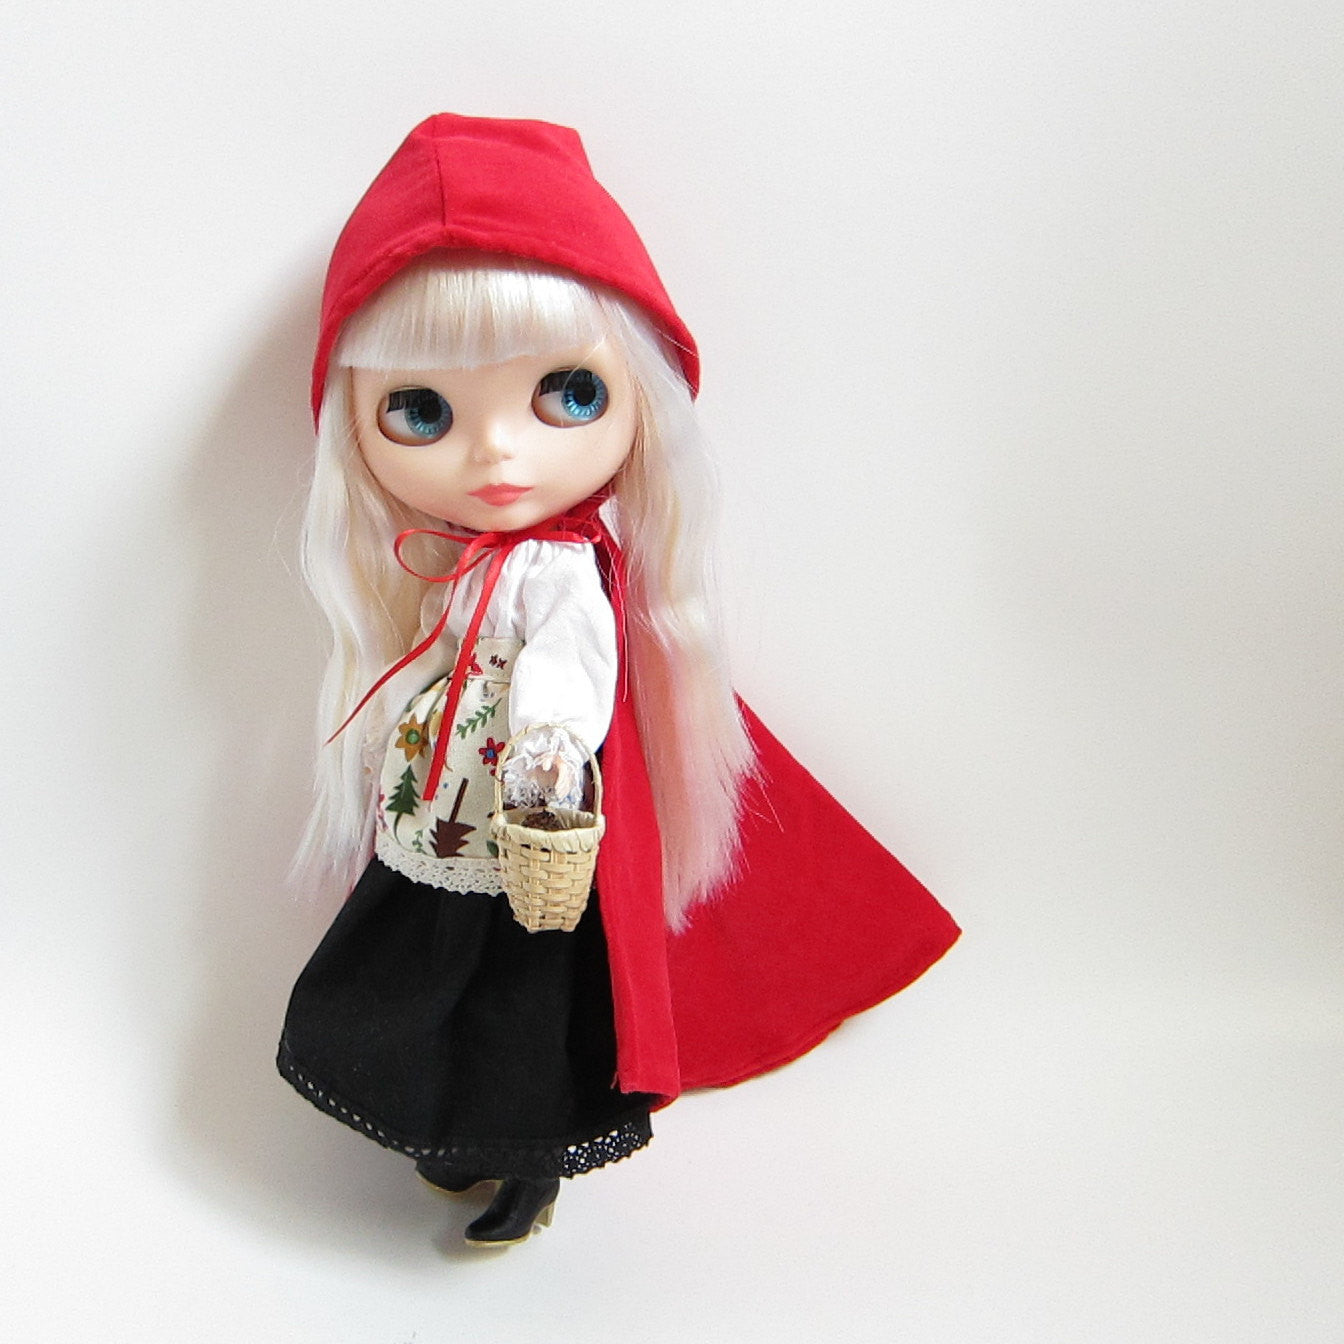 Little Red Riding Hood costume outfit for Blythe and Pullip dolls